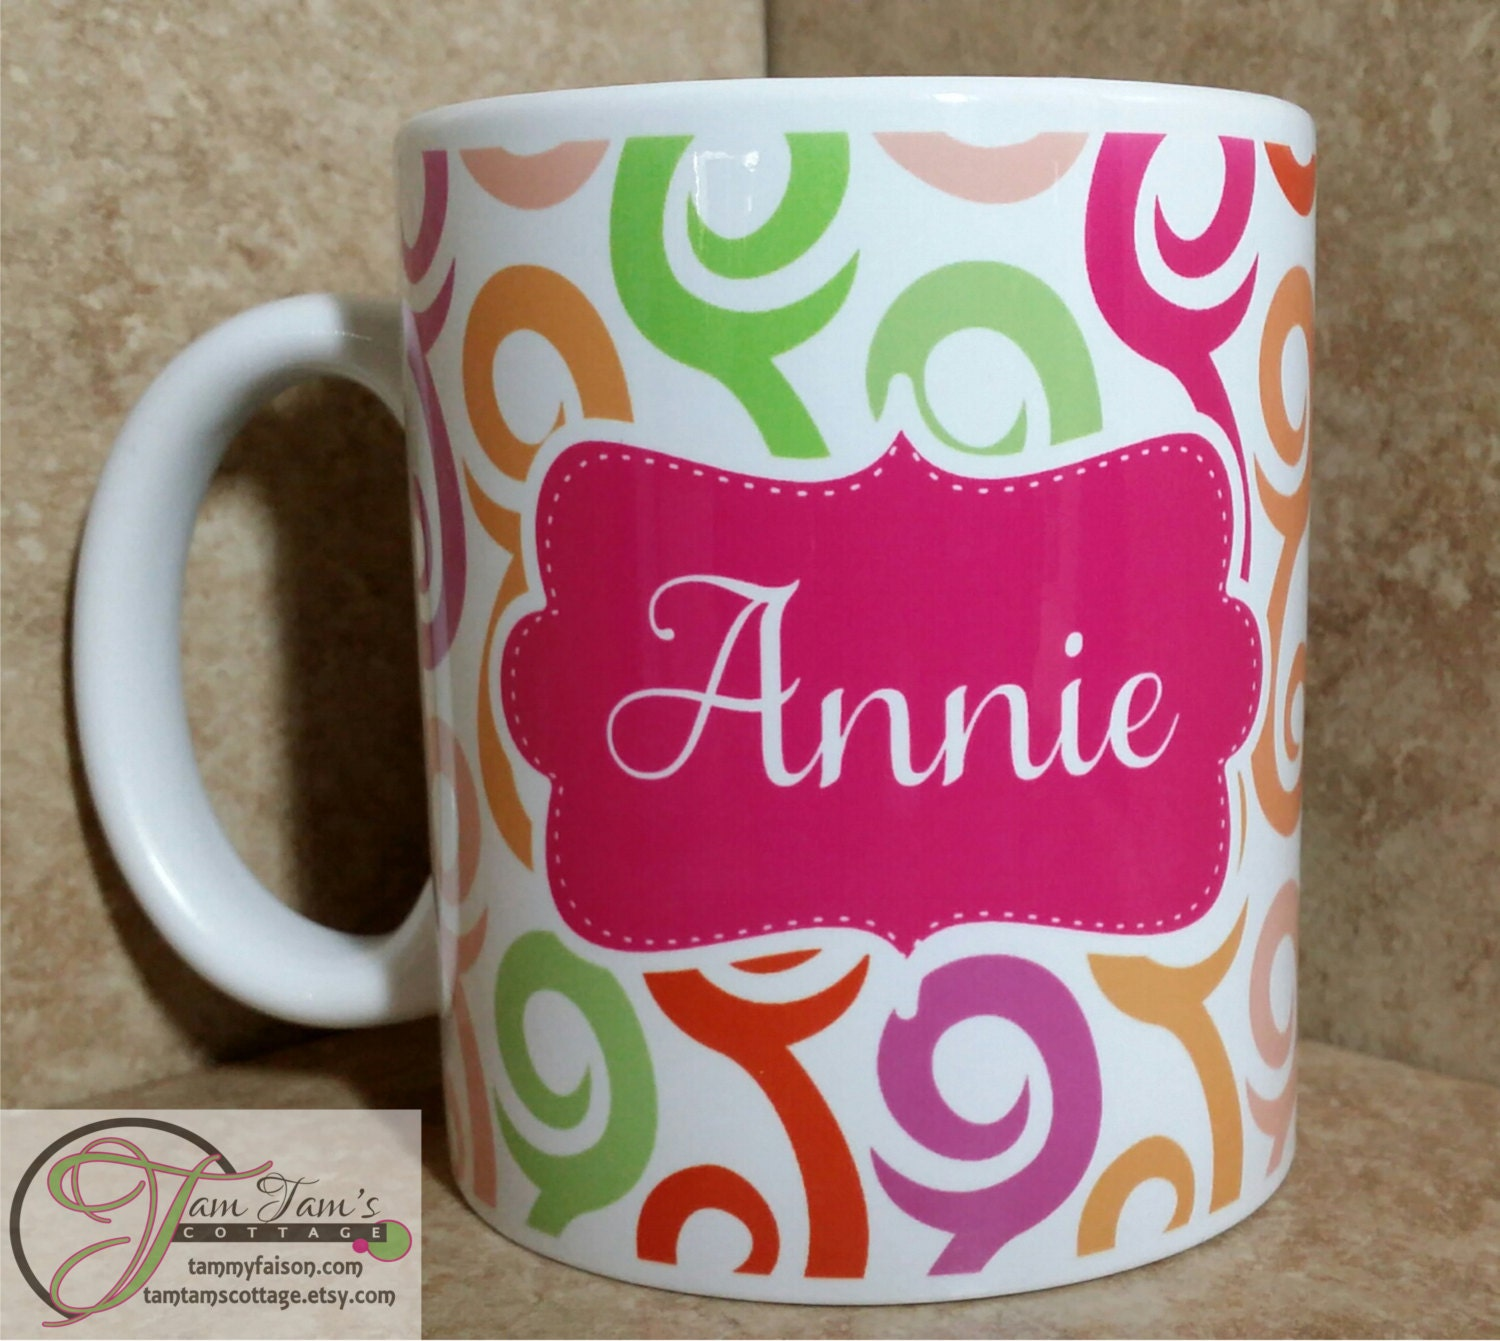 Swirl Design Coffee Mug Personalized Name Mug Custom Mug | Etsy